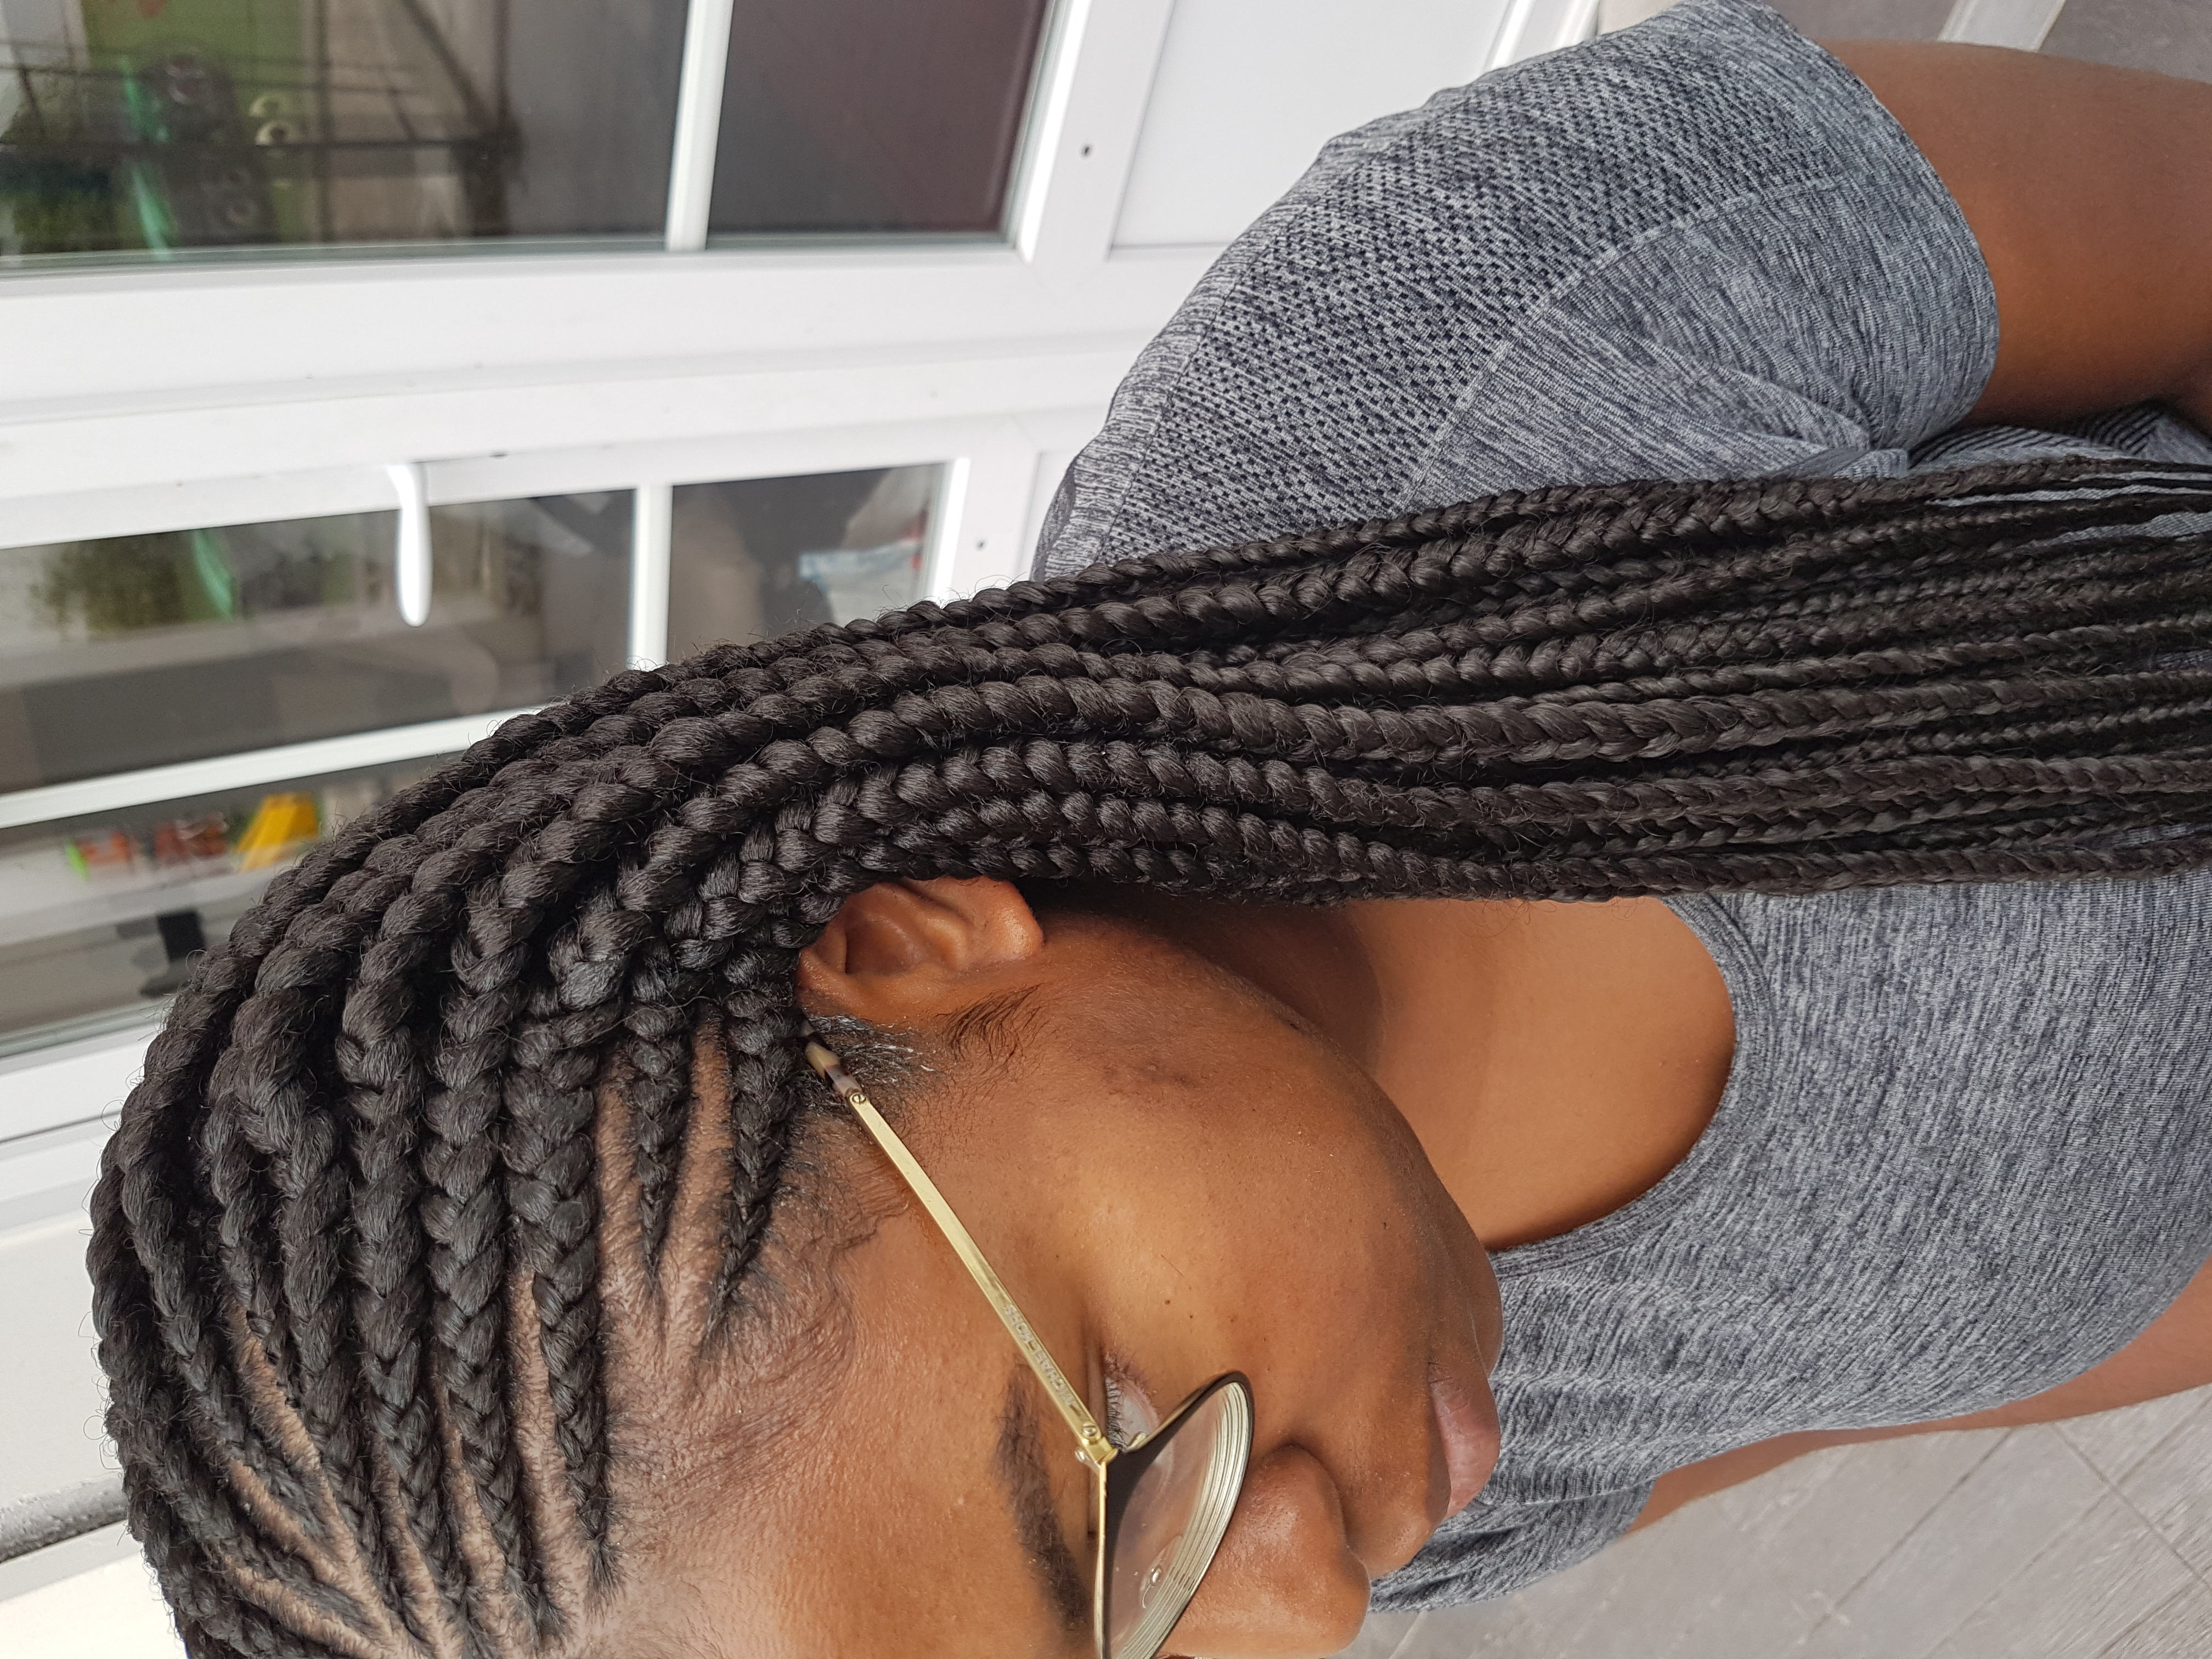 salon de coiffure afro tresse tresses box braids crochet braids vanilles tissages paris 75 77 78 91 92 93 94 95 NYACTXML